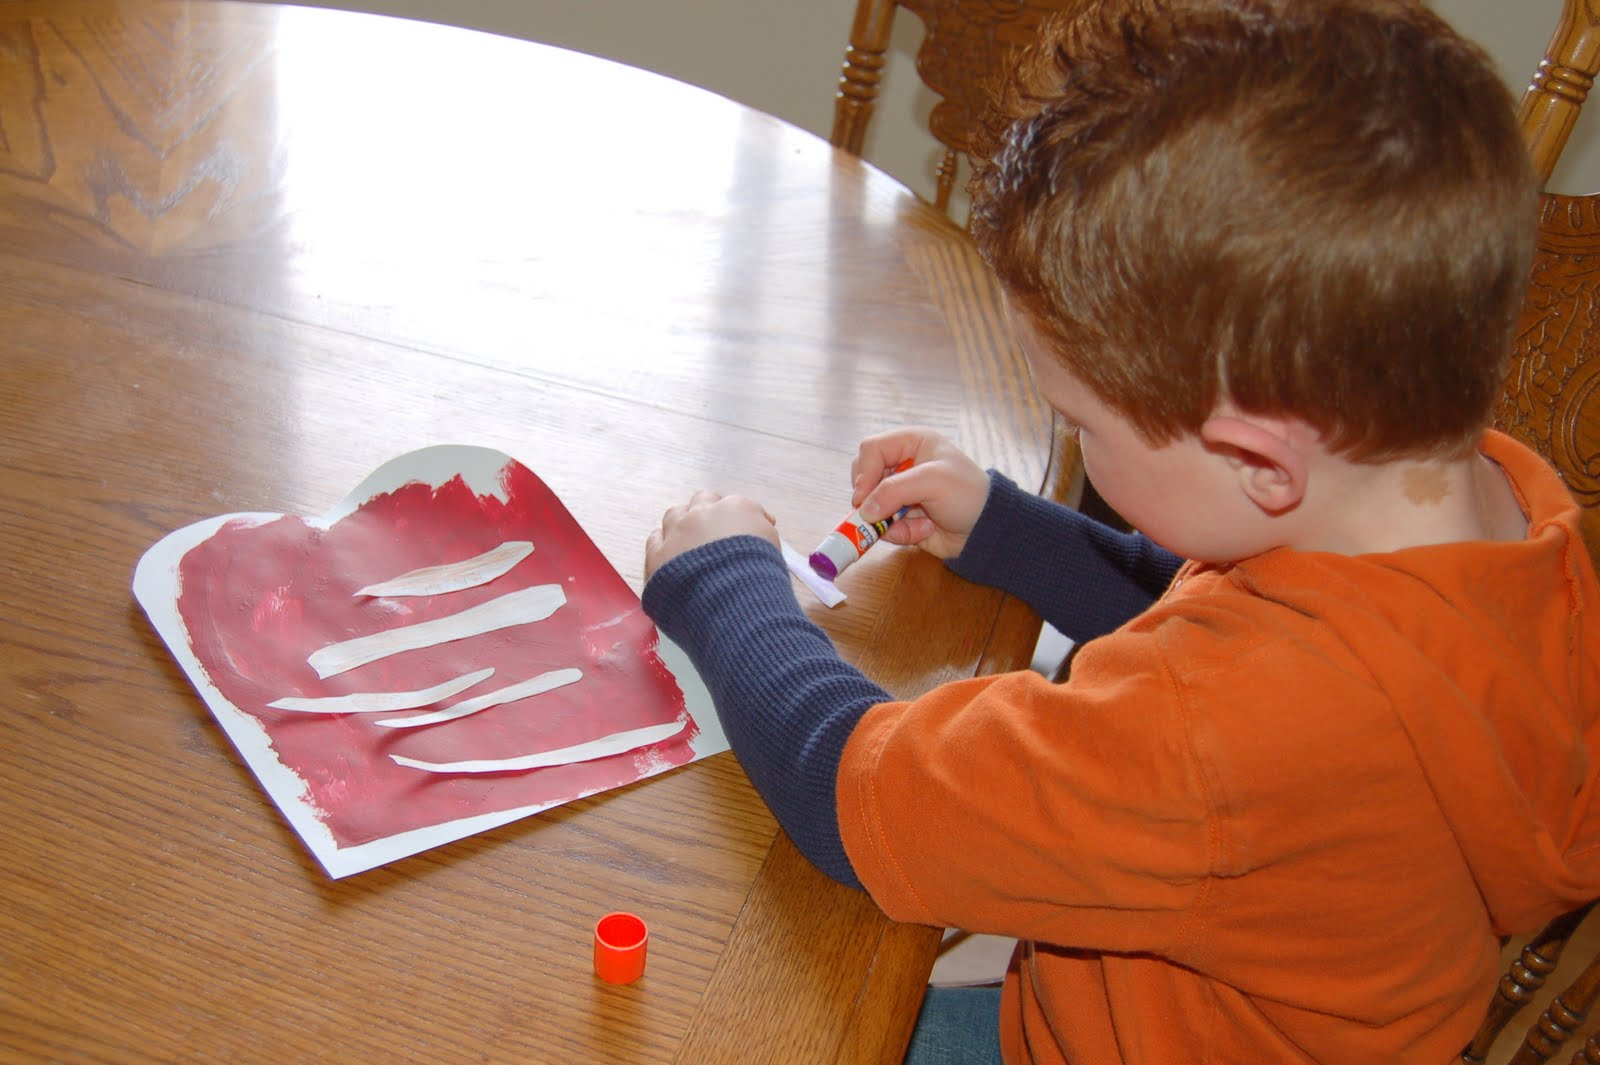 giant jam sandwich coloring pages - photo#36